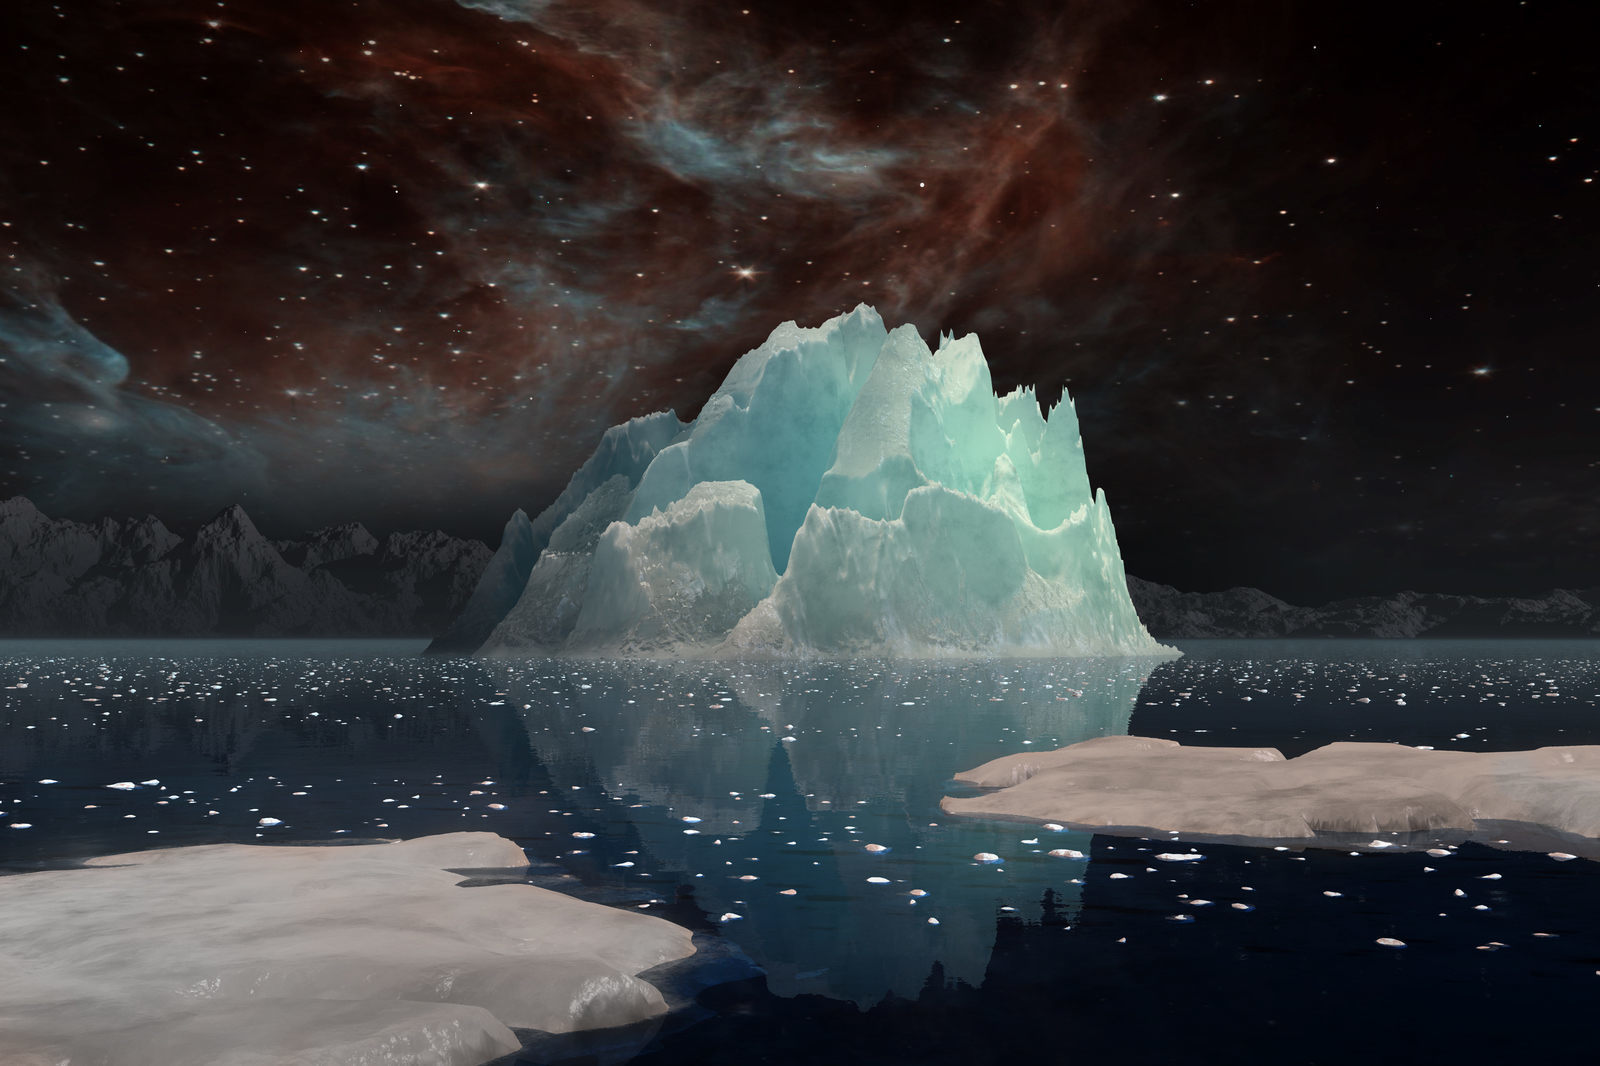 An abstract view of an iceberg under a dark sky in an inky black sea.